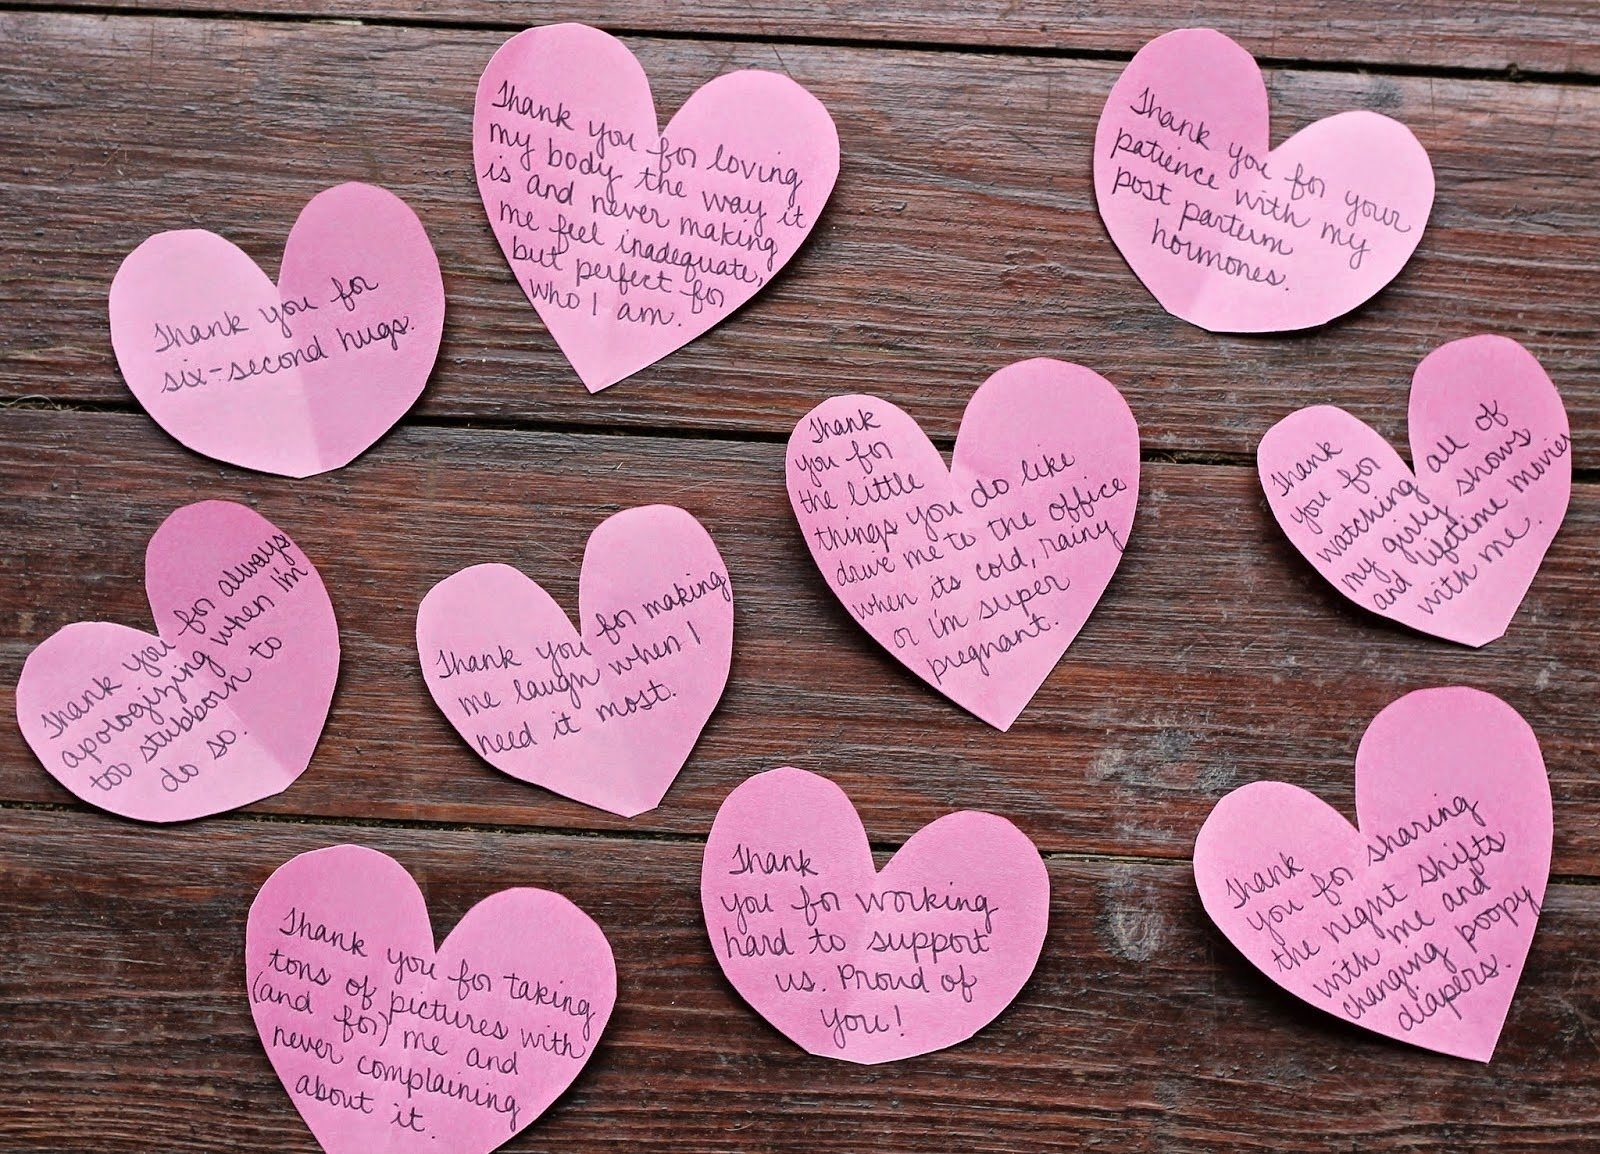 10 Spectacular Love Note Ideas For Him creative party ideascheryl valentine post itlove notes 2020